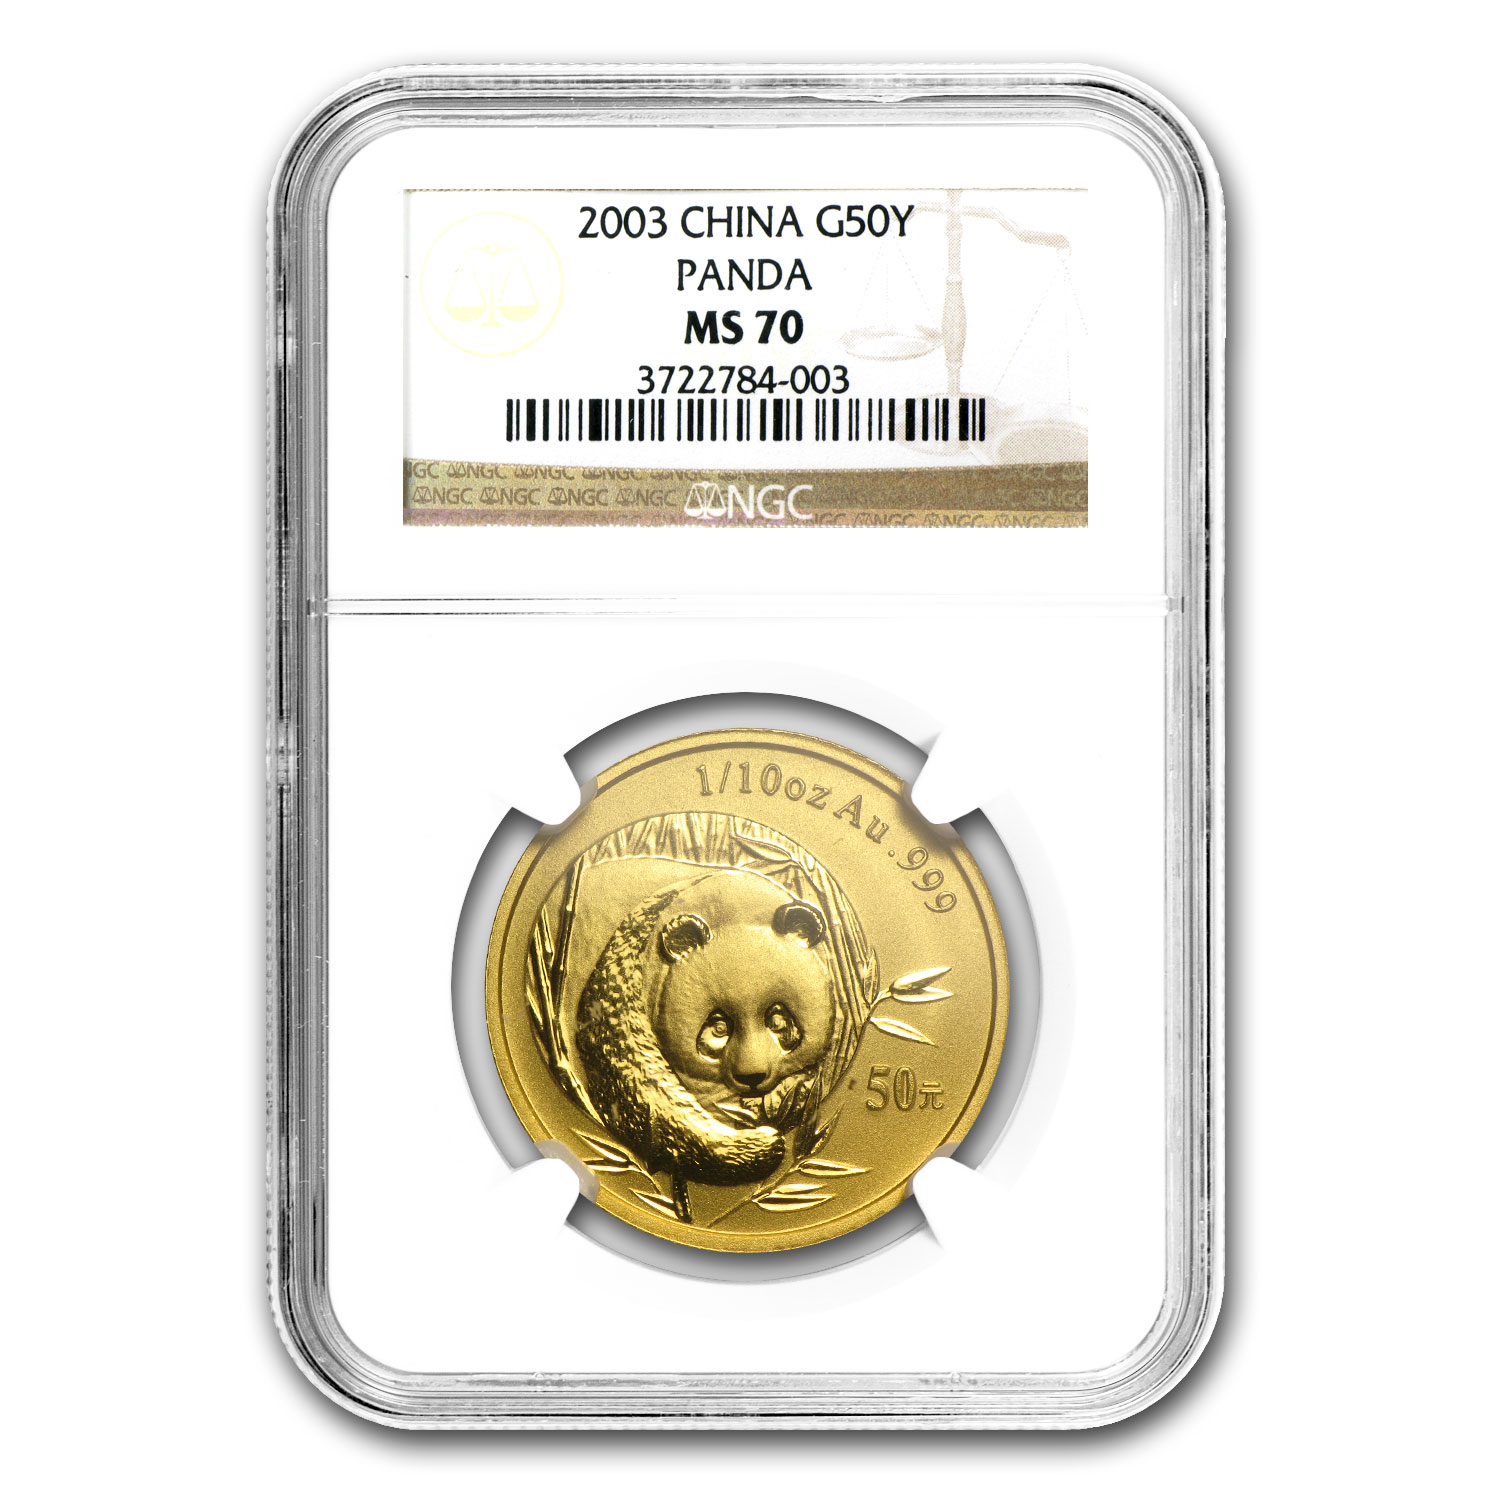 2003 China 1/10 oz Gold Panda MS-70 NGC